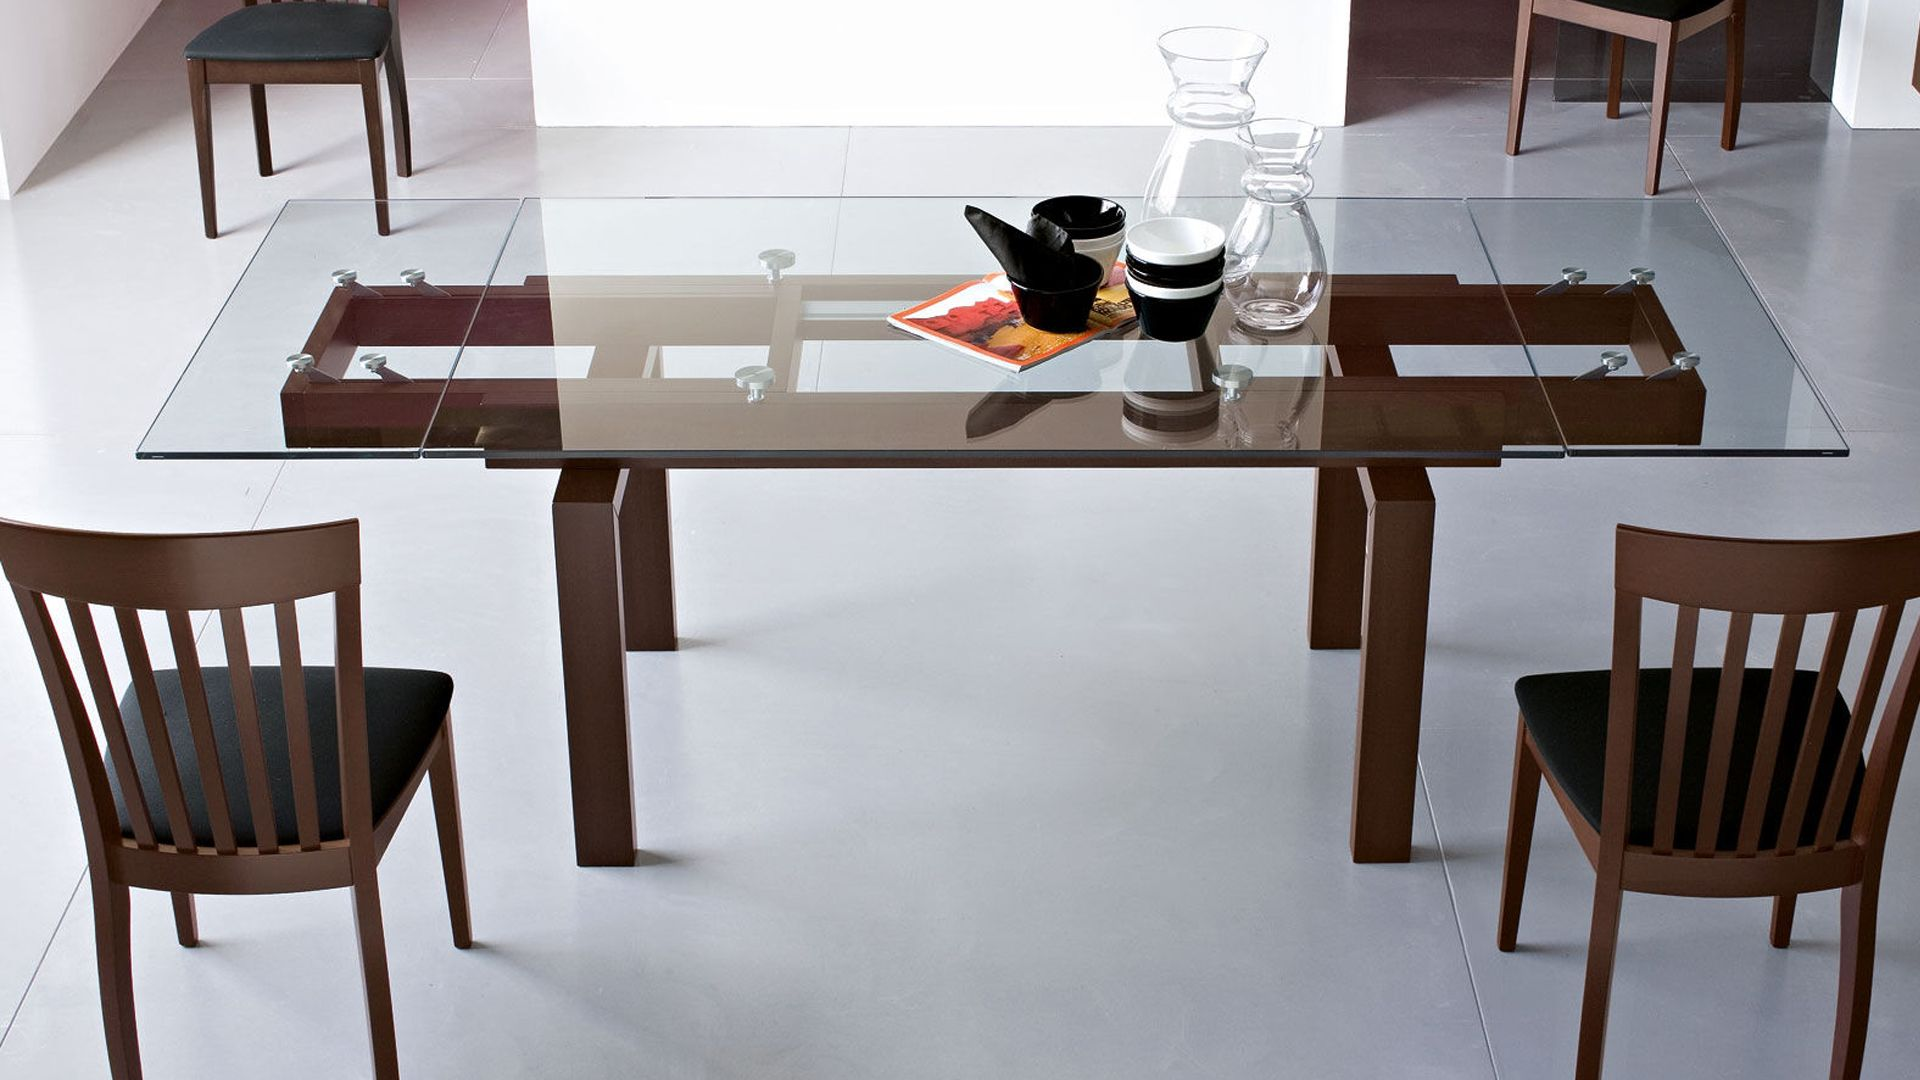 Hyper By Calligaris Glass Dining Room Table Traditional Dining Room Table Modern Dining Table